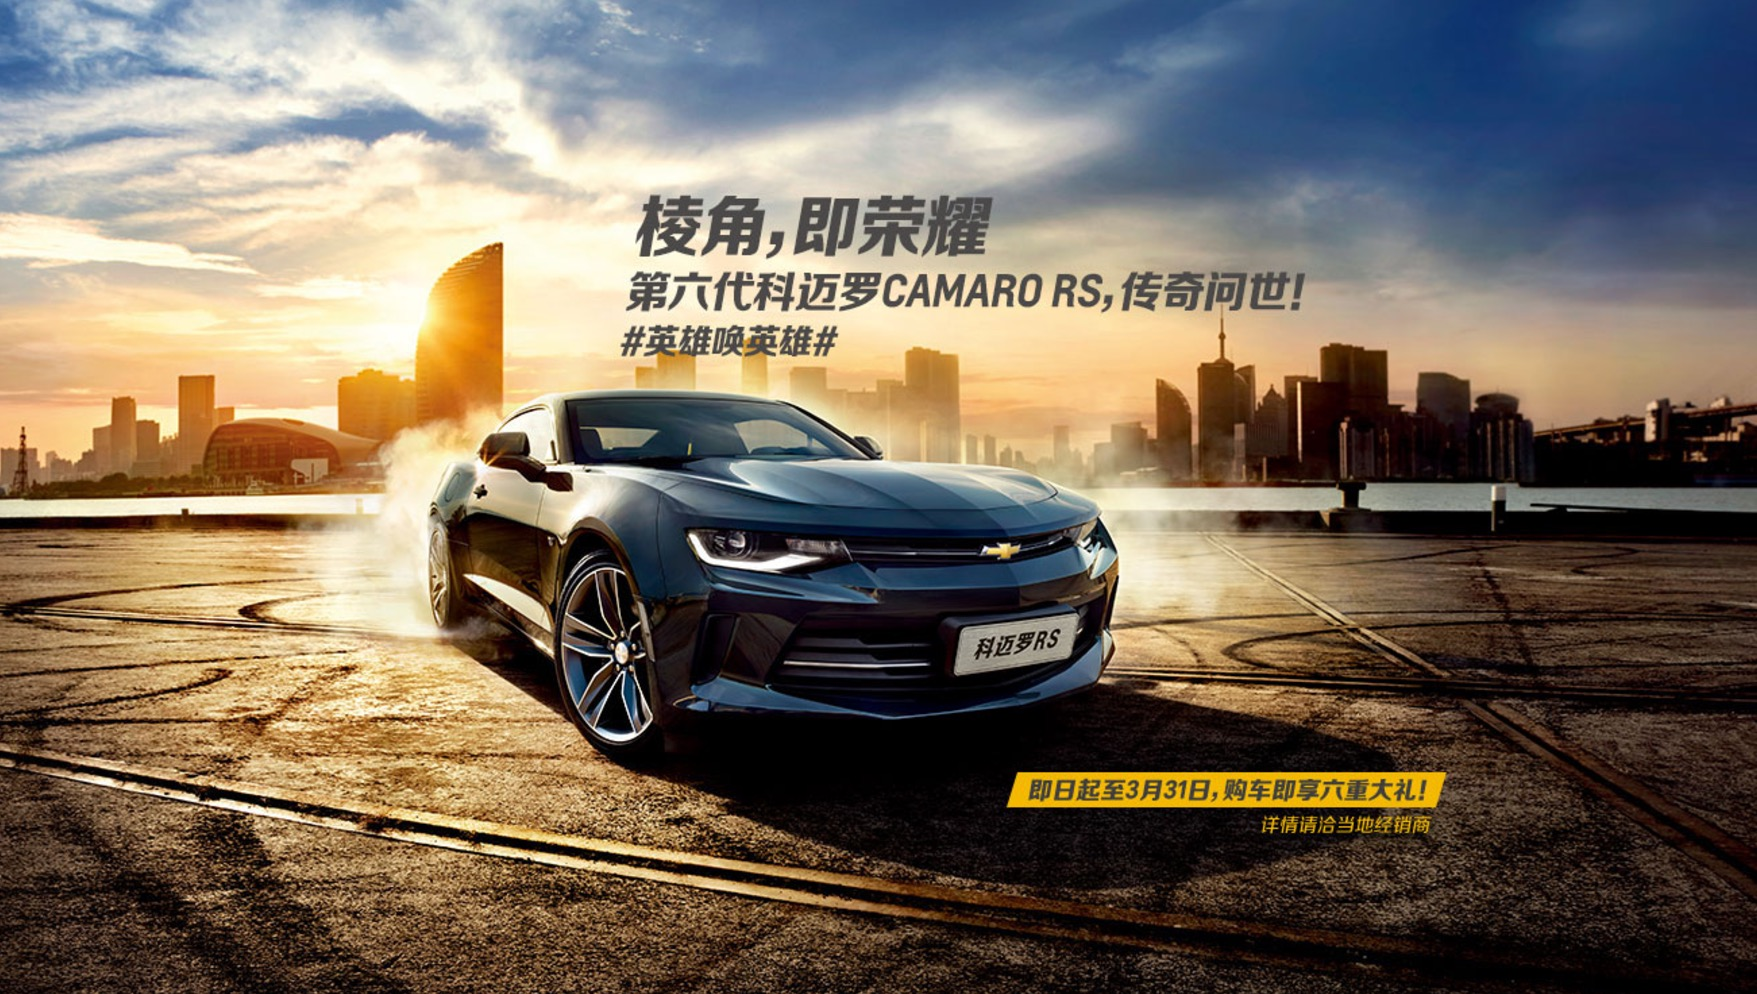 2017 Chevrolet Camaro Rs Costs 58125 In China Autoevolution Engine Wiring Diagram On Abit 9 Photos